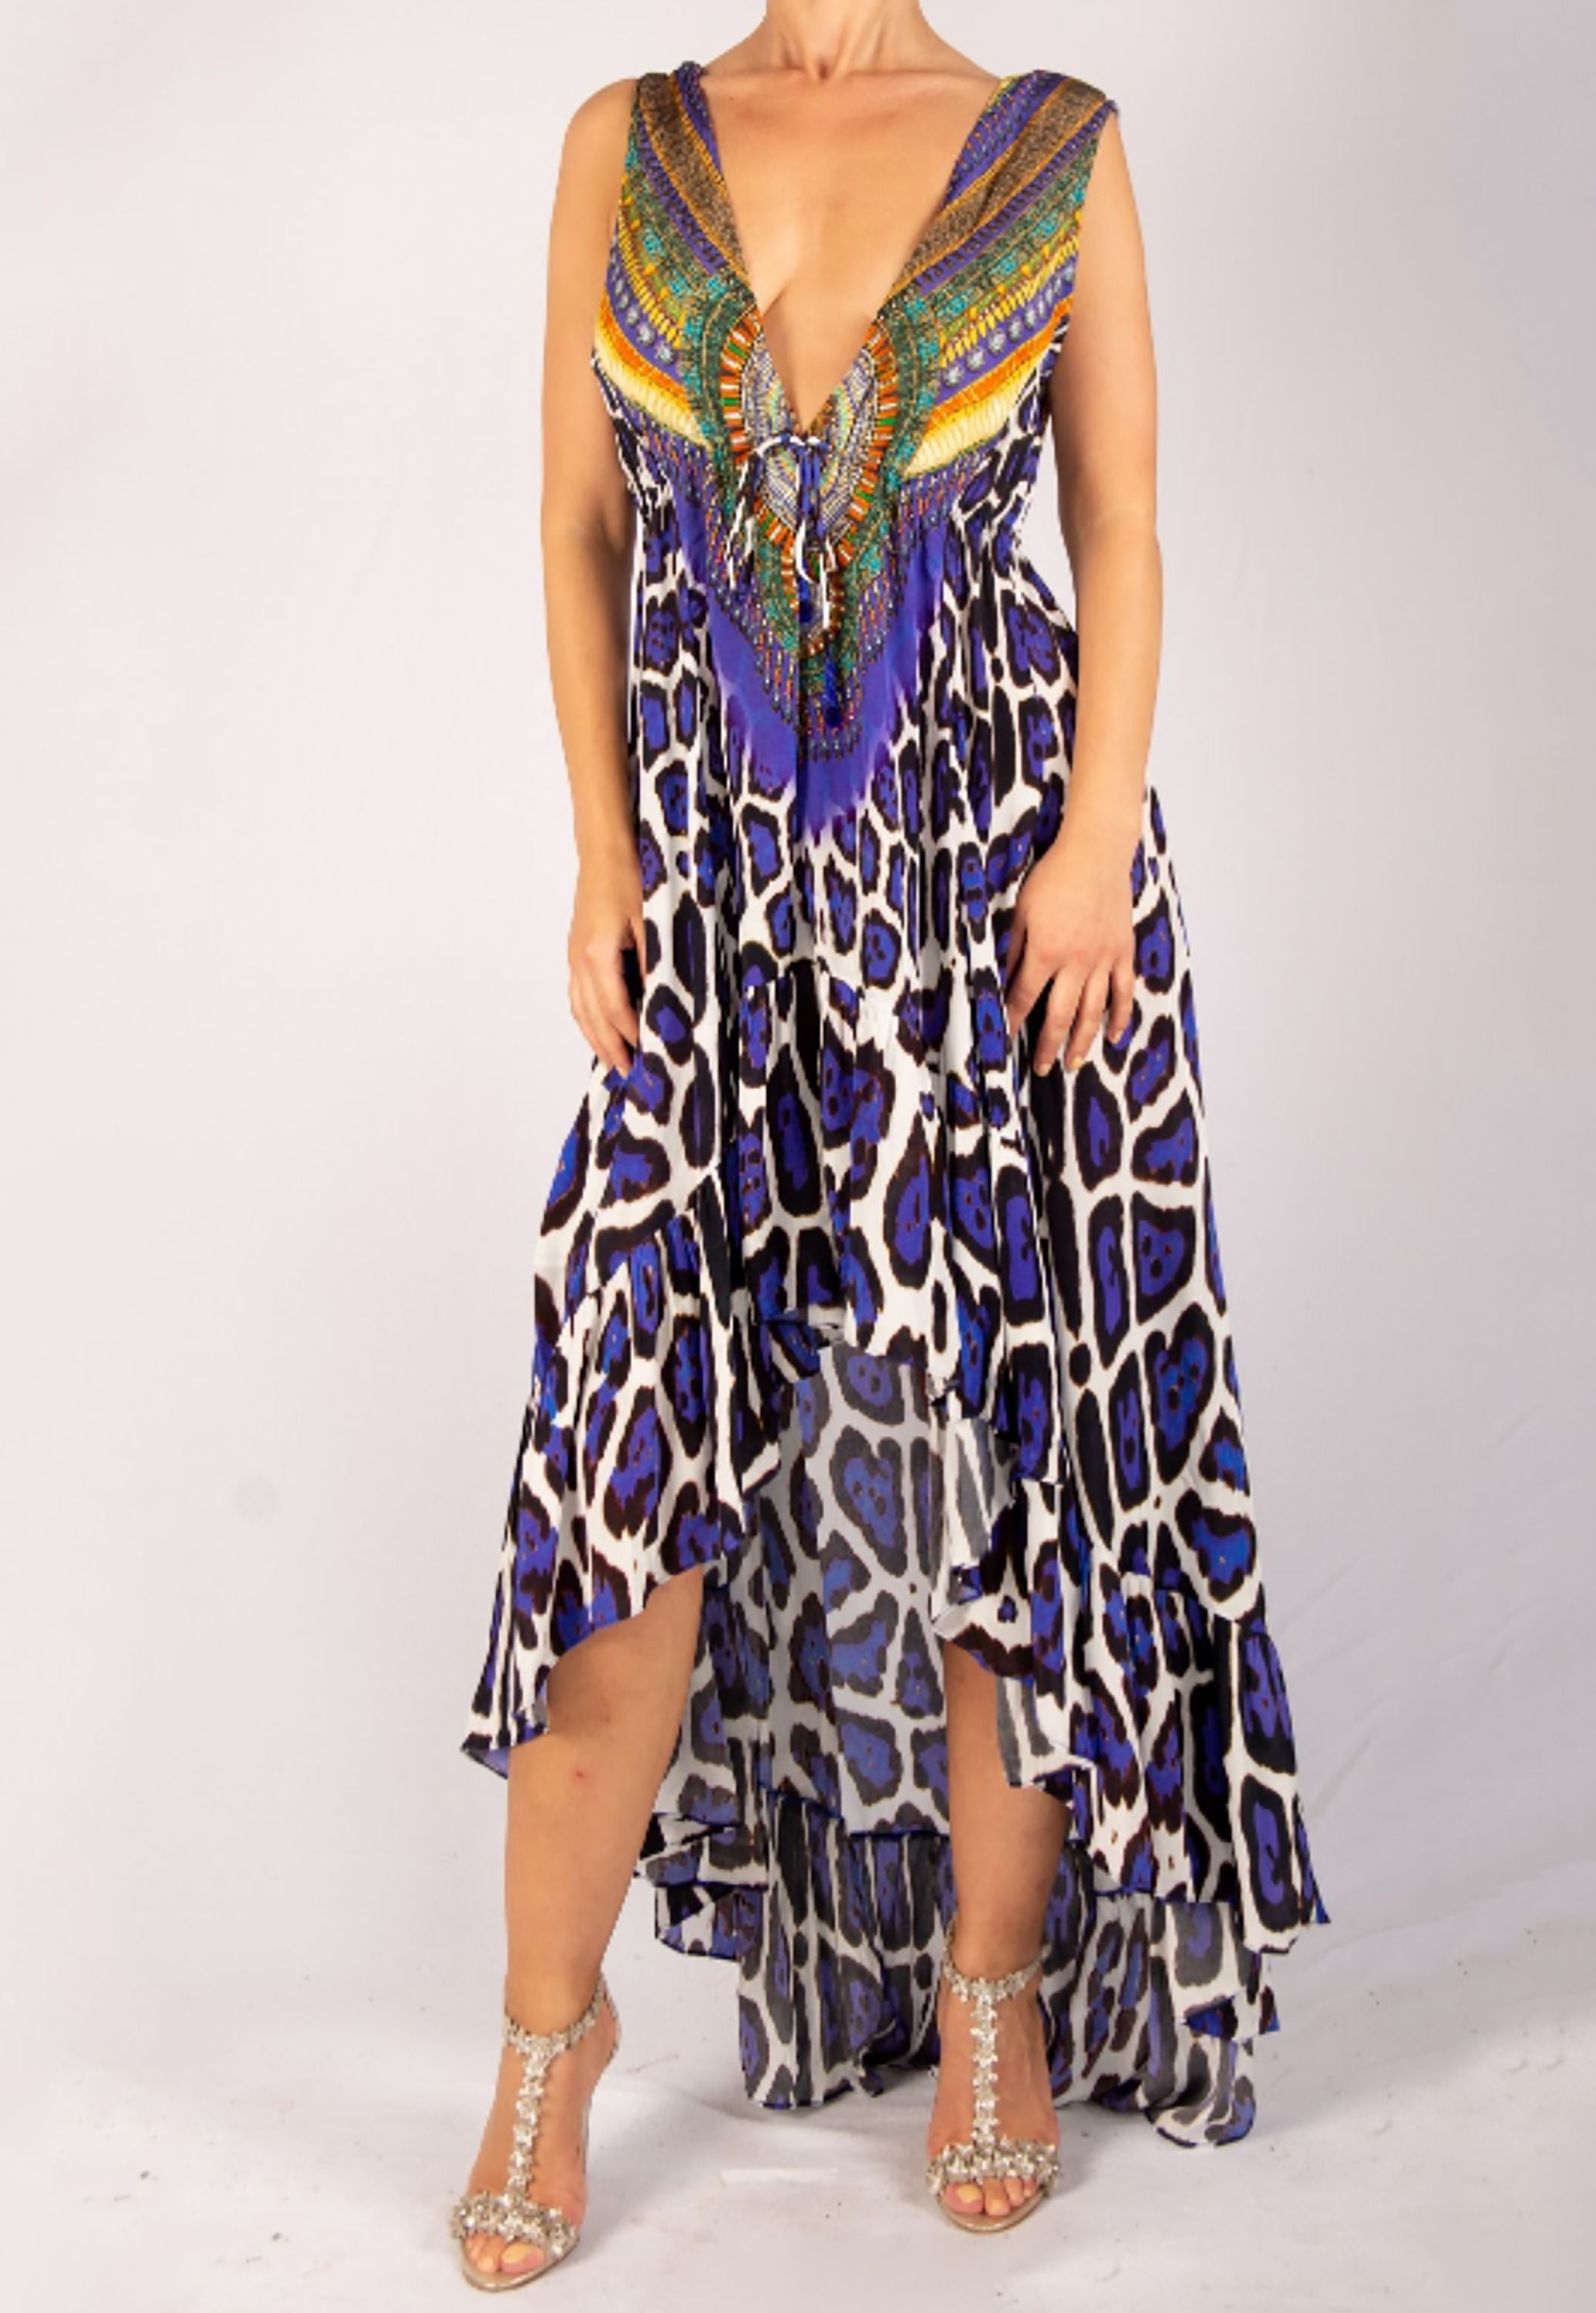 SHAHIDA PARIDES PURPLE HIGH-LOW CONVERTIBLE MAXI DRESS RESORT WEAR